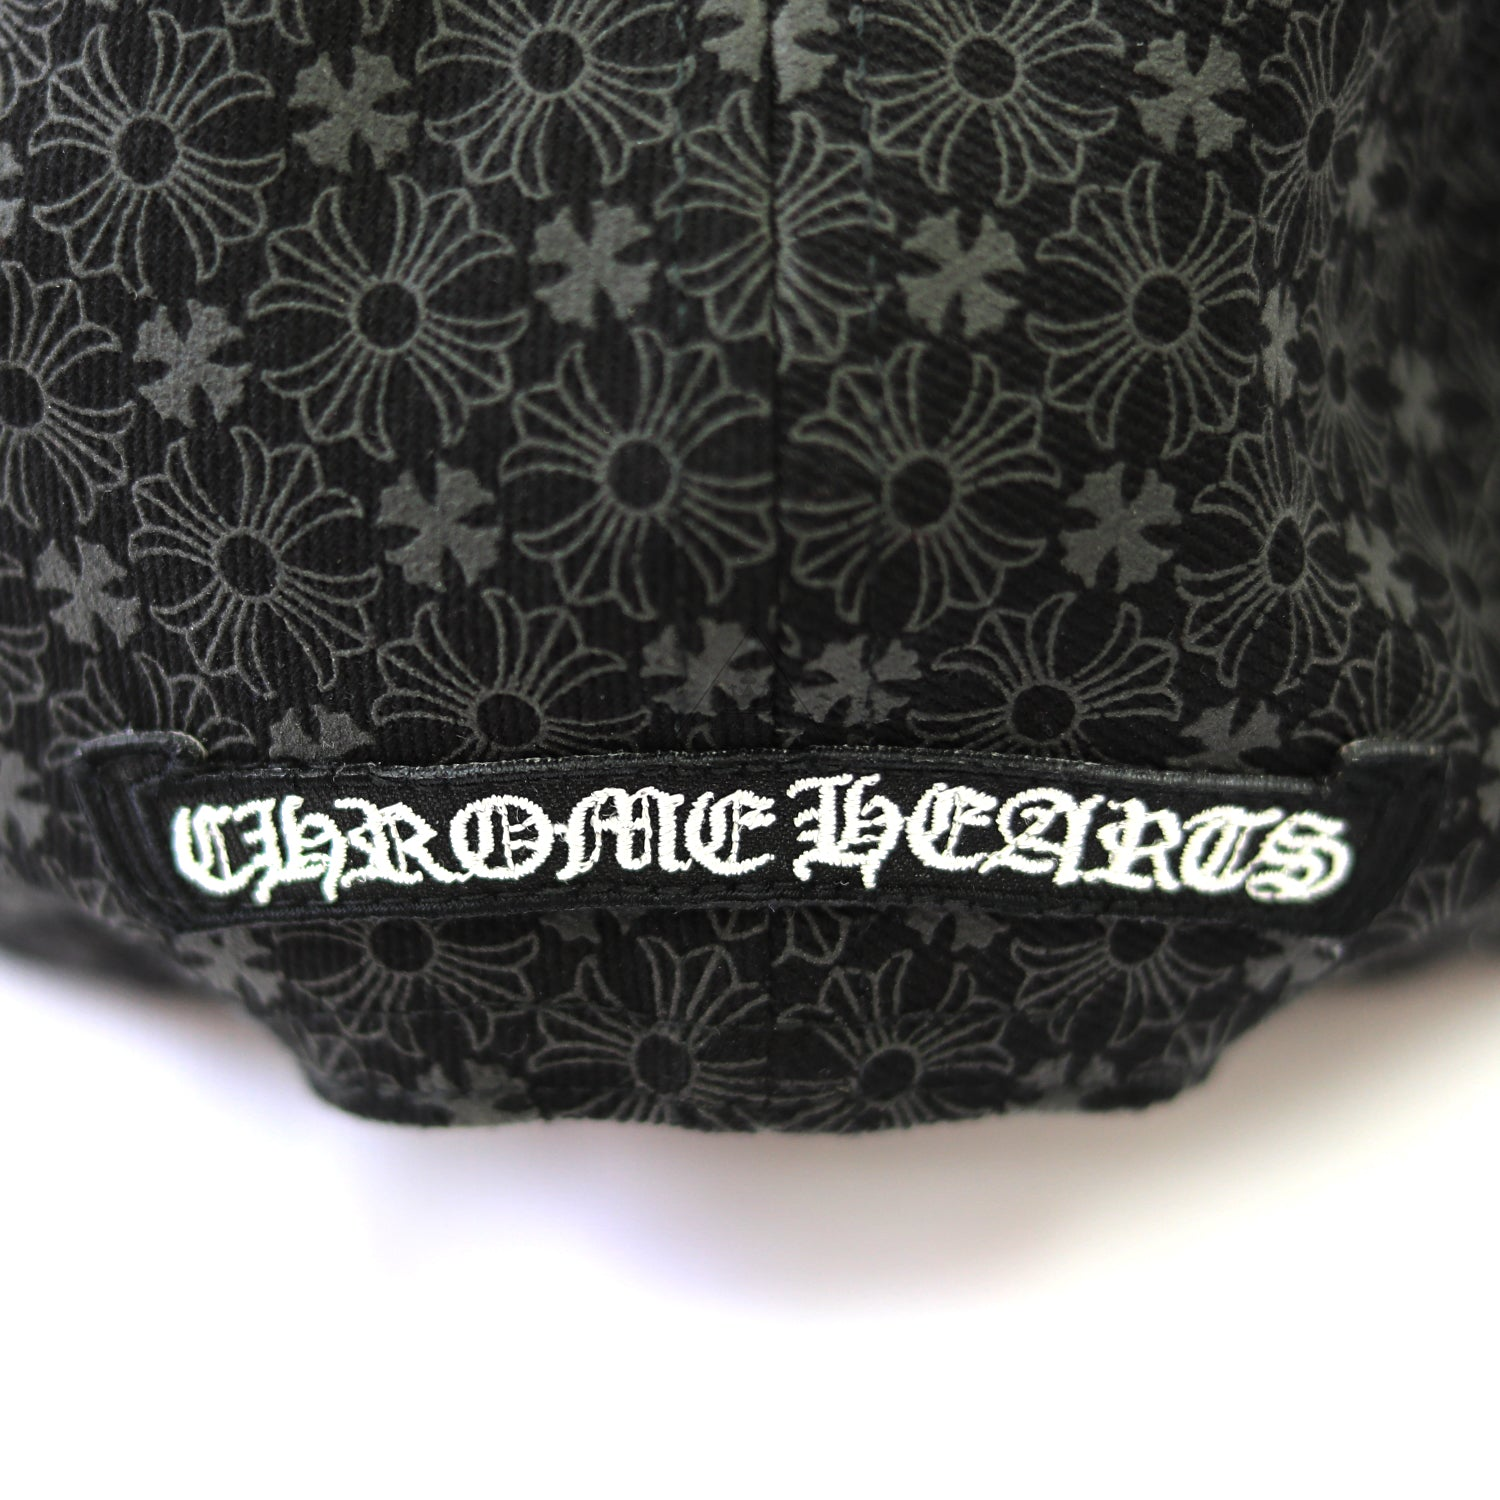 Chrome Hearts Plus Leather Patch Vented Trucker Hat